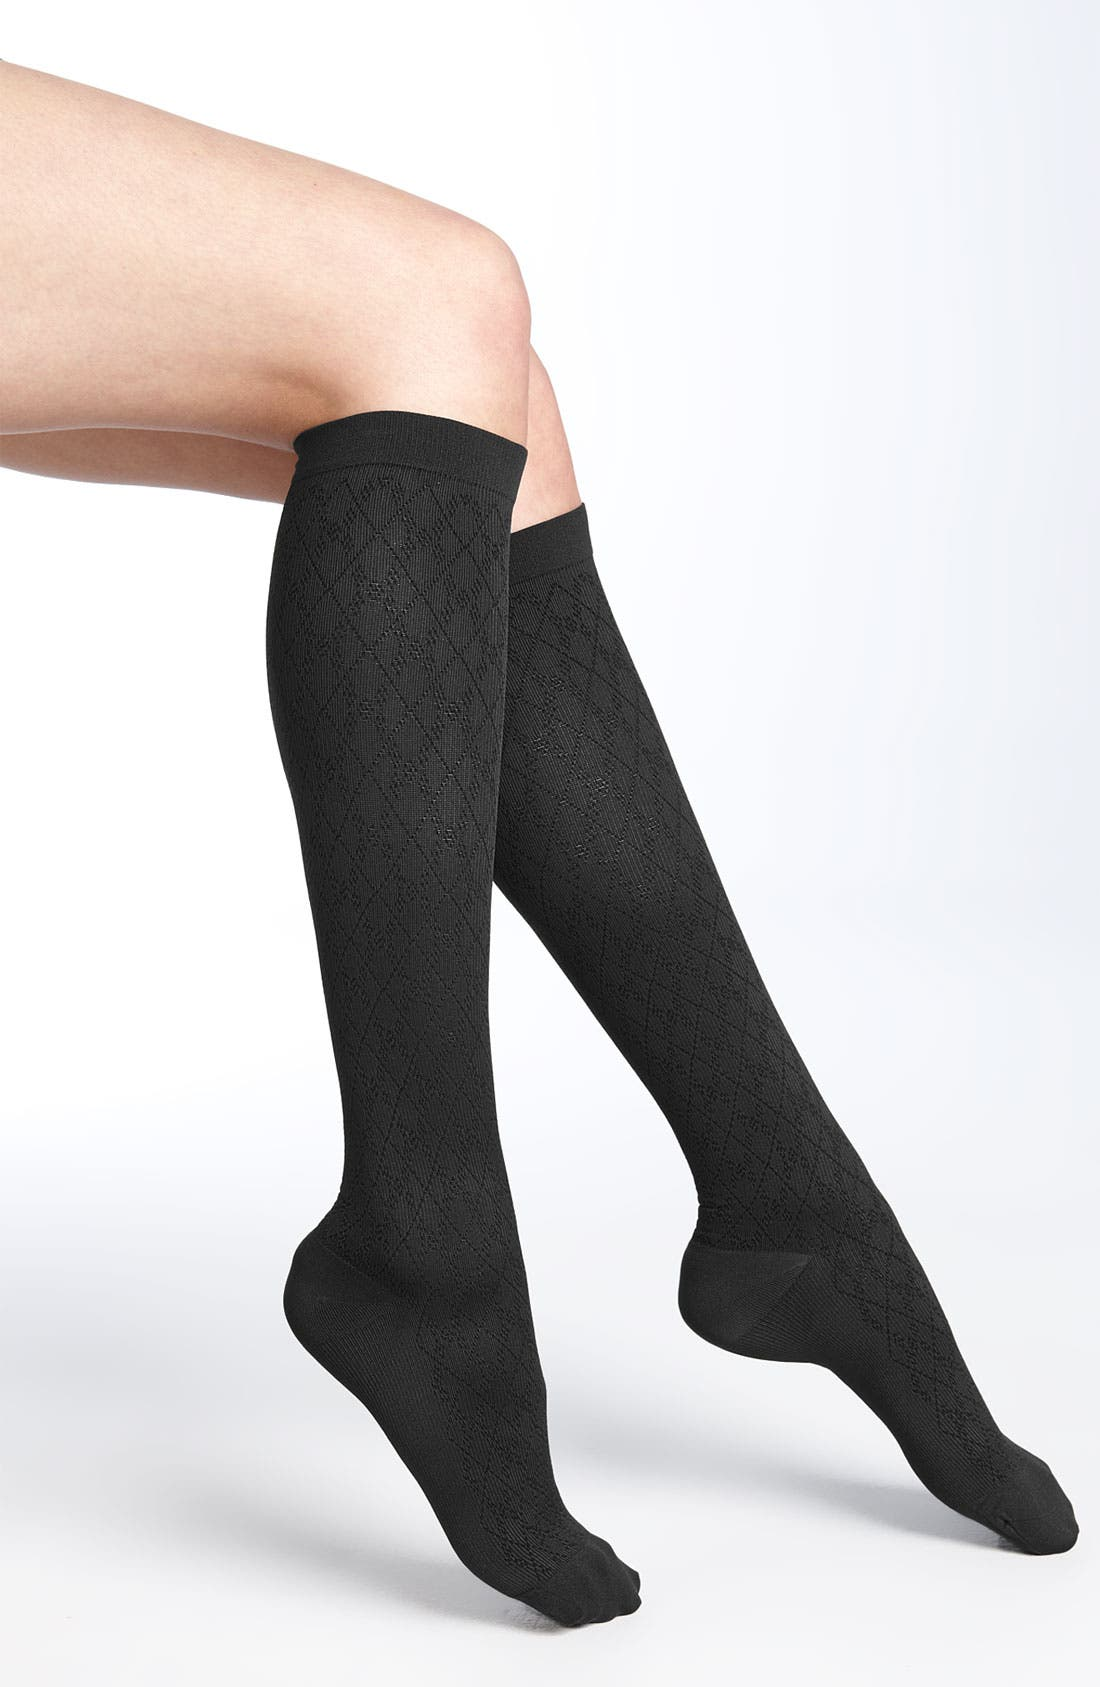 Alternate Image 1 Selected - Nordstrom 'Diamond' Compression Trouser Socks (3 for $36)